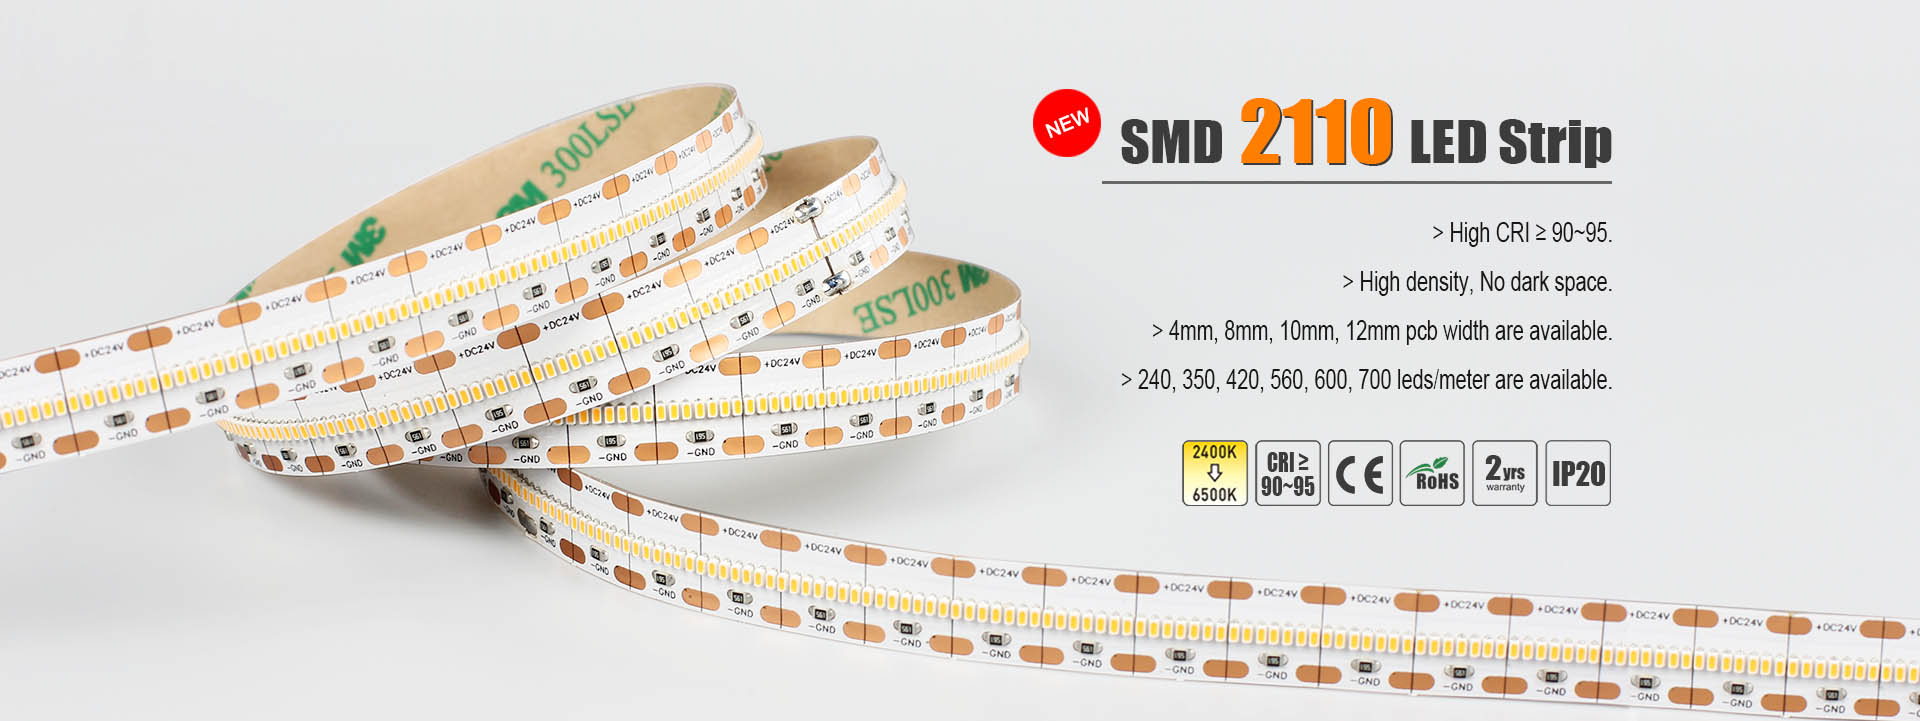 SMD 2110 led strip